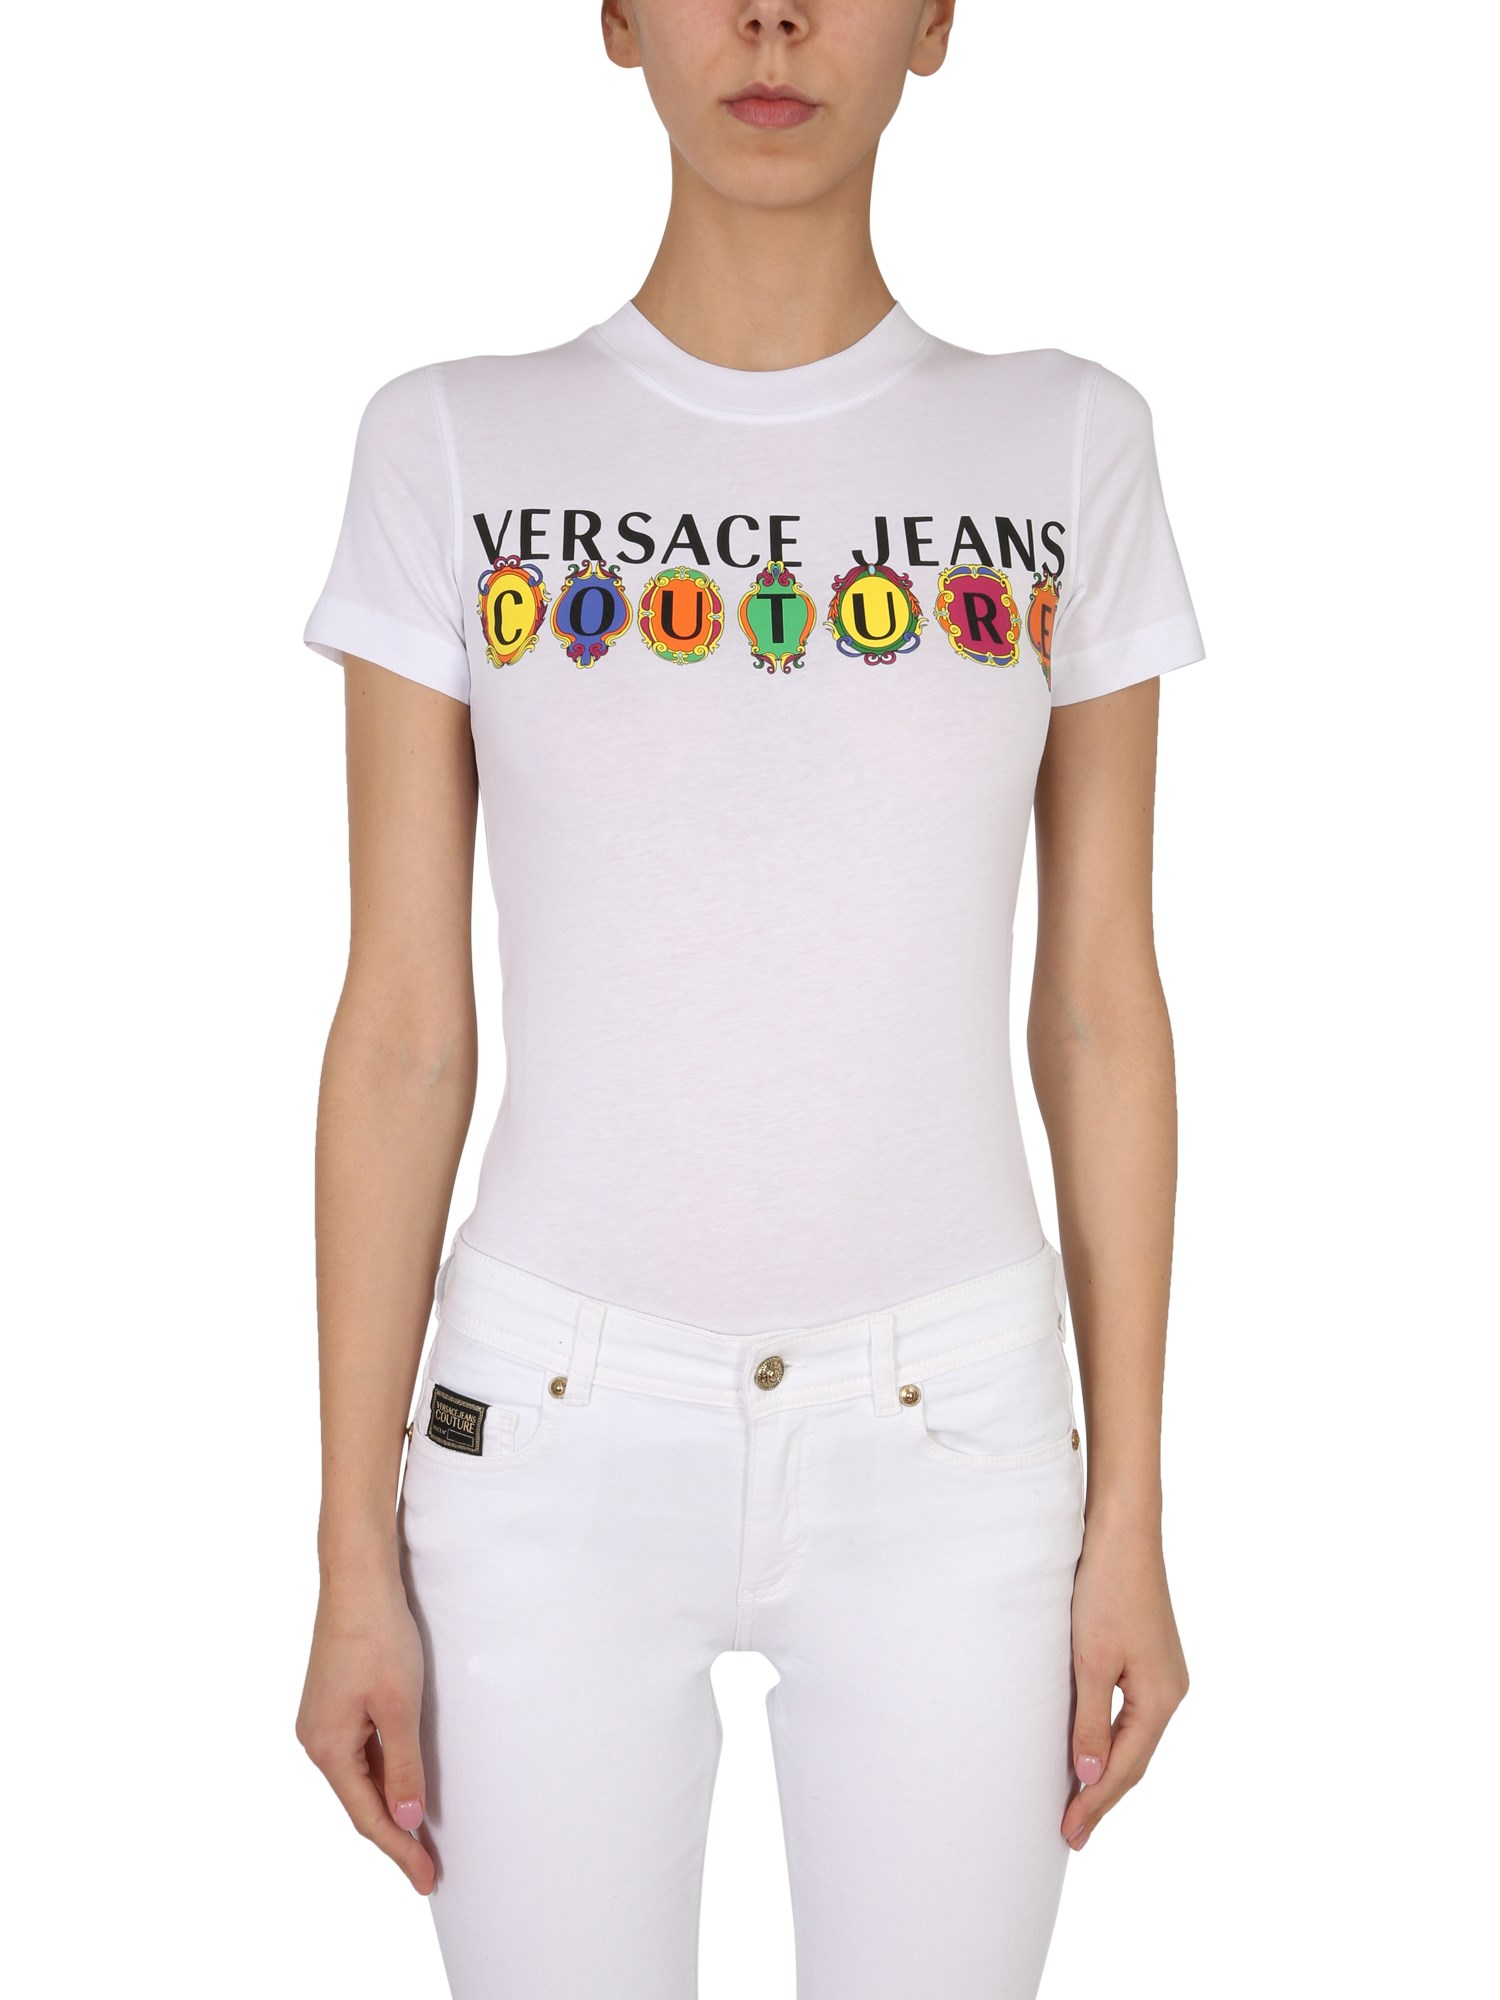 Versace Jeans Couture T-SHIRT REGULAR FIT